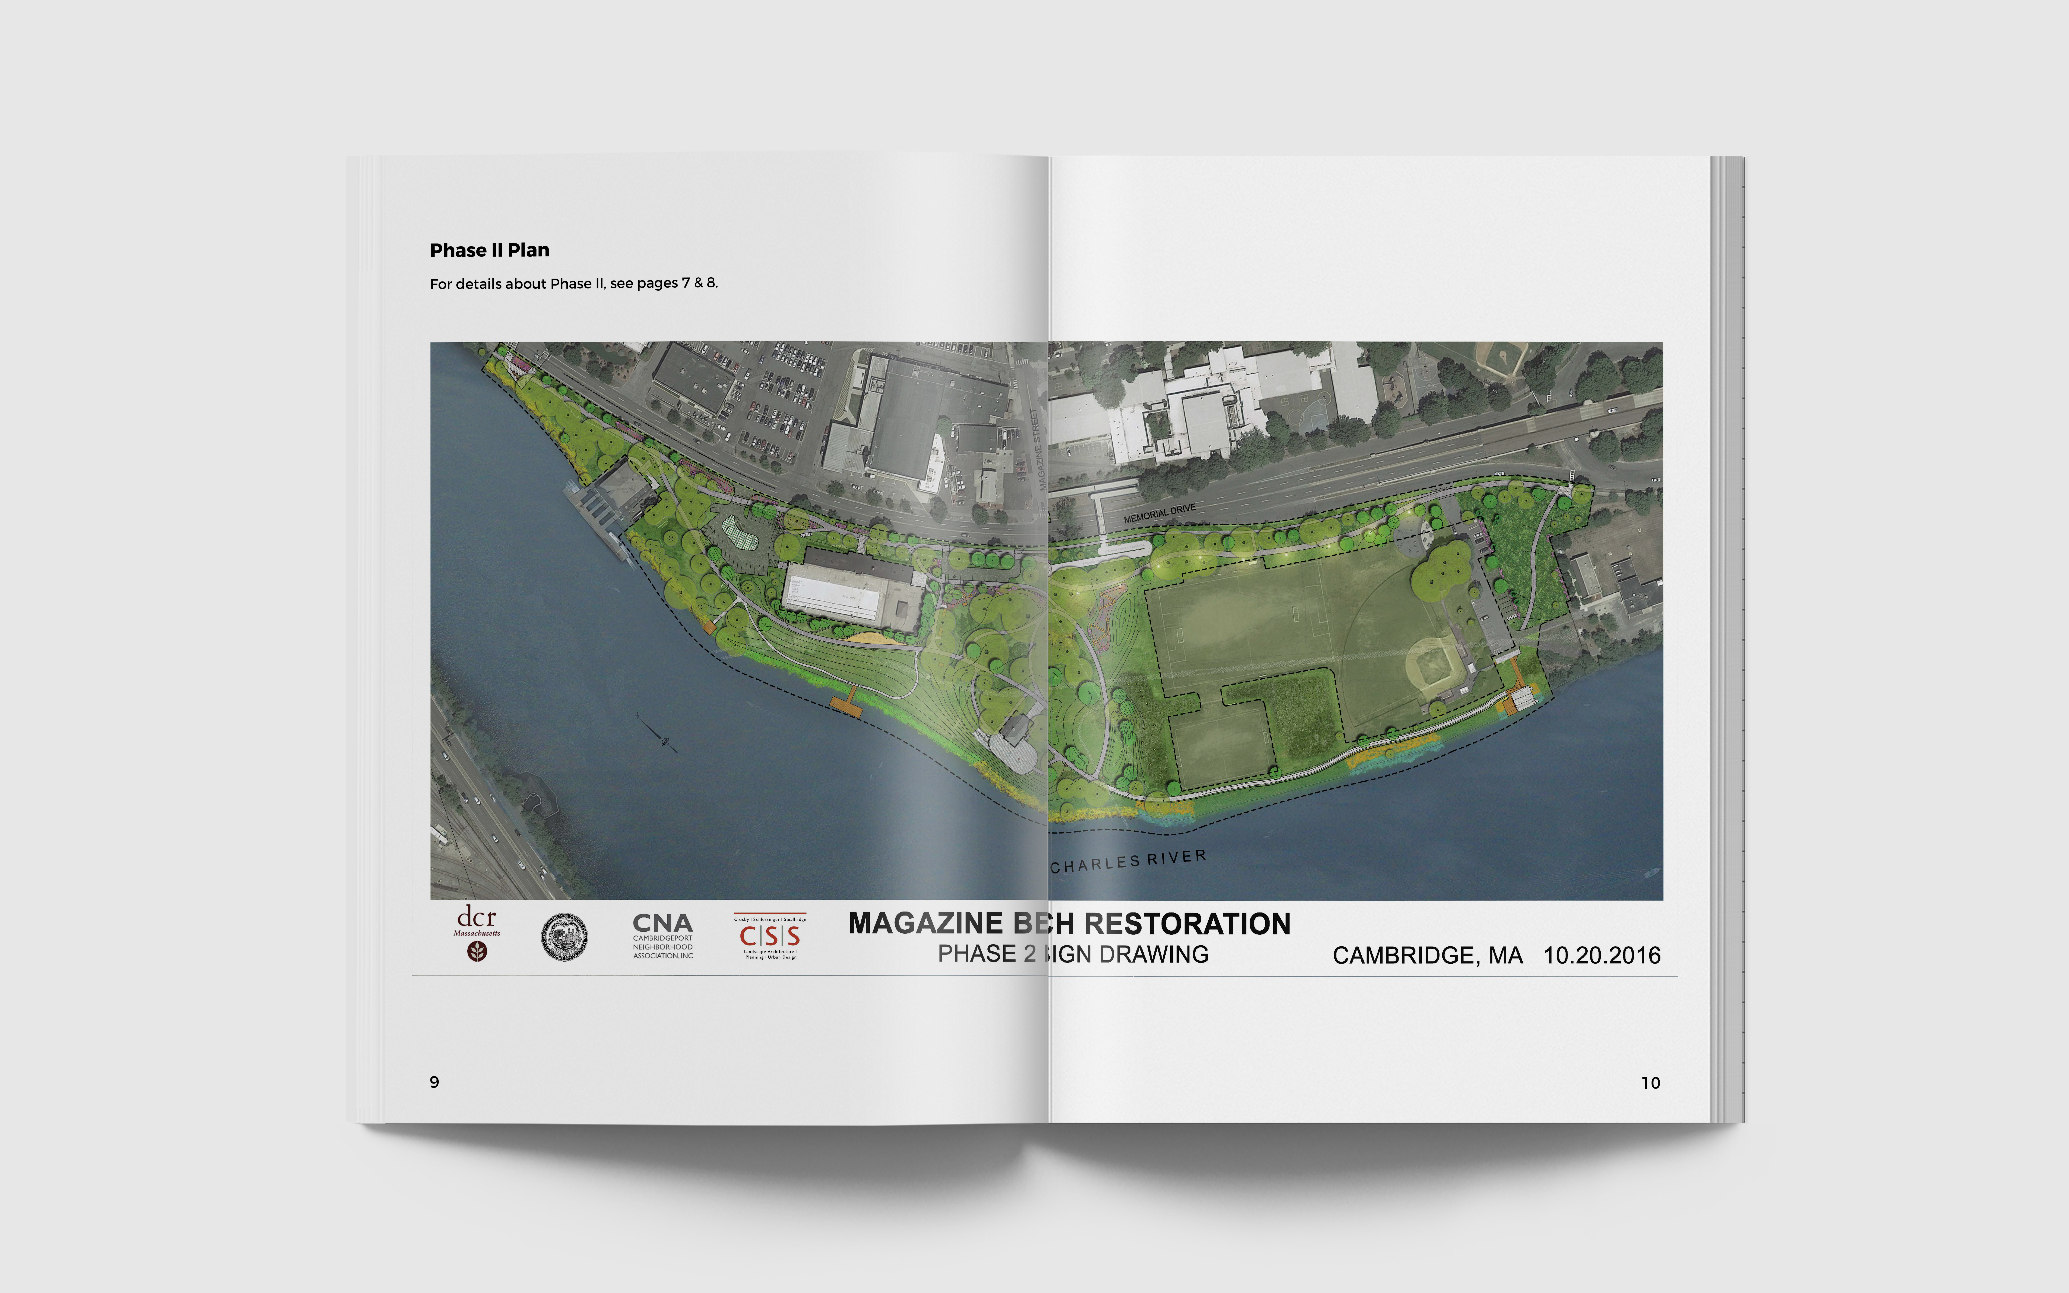 Pages Outlining Phase II Plan Detailing Proposed Park Designs